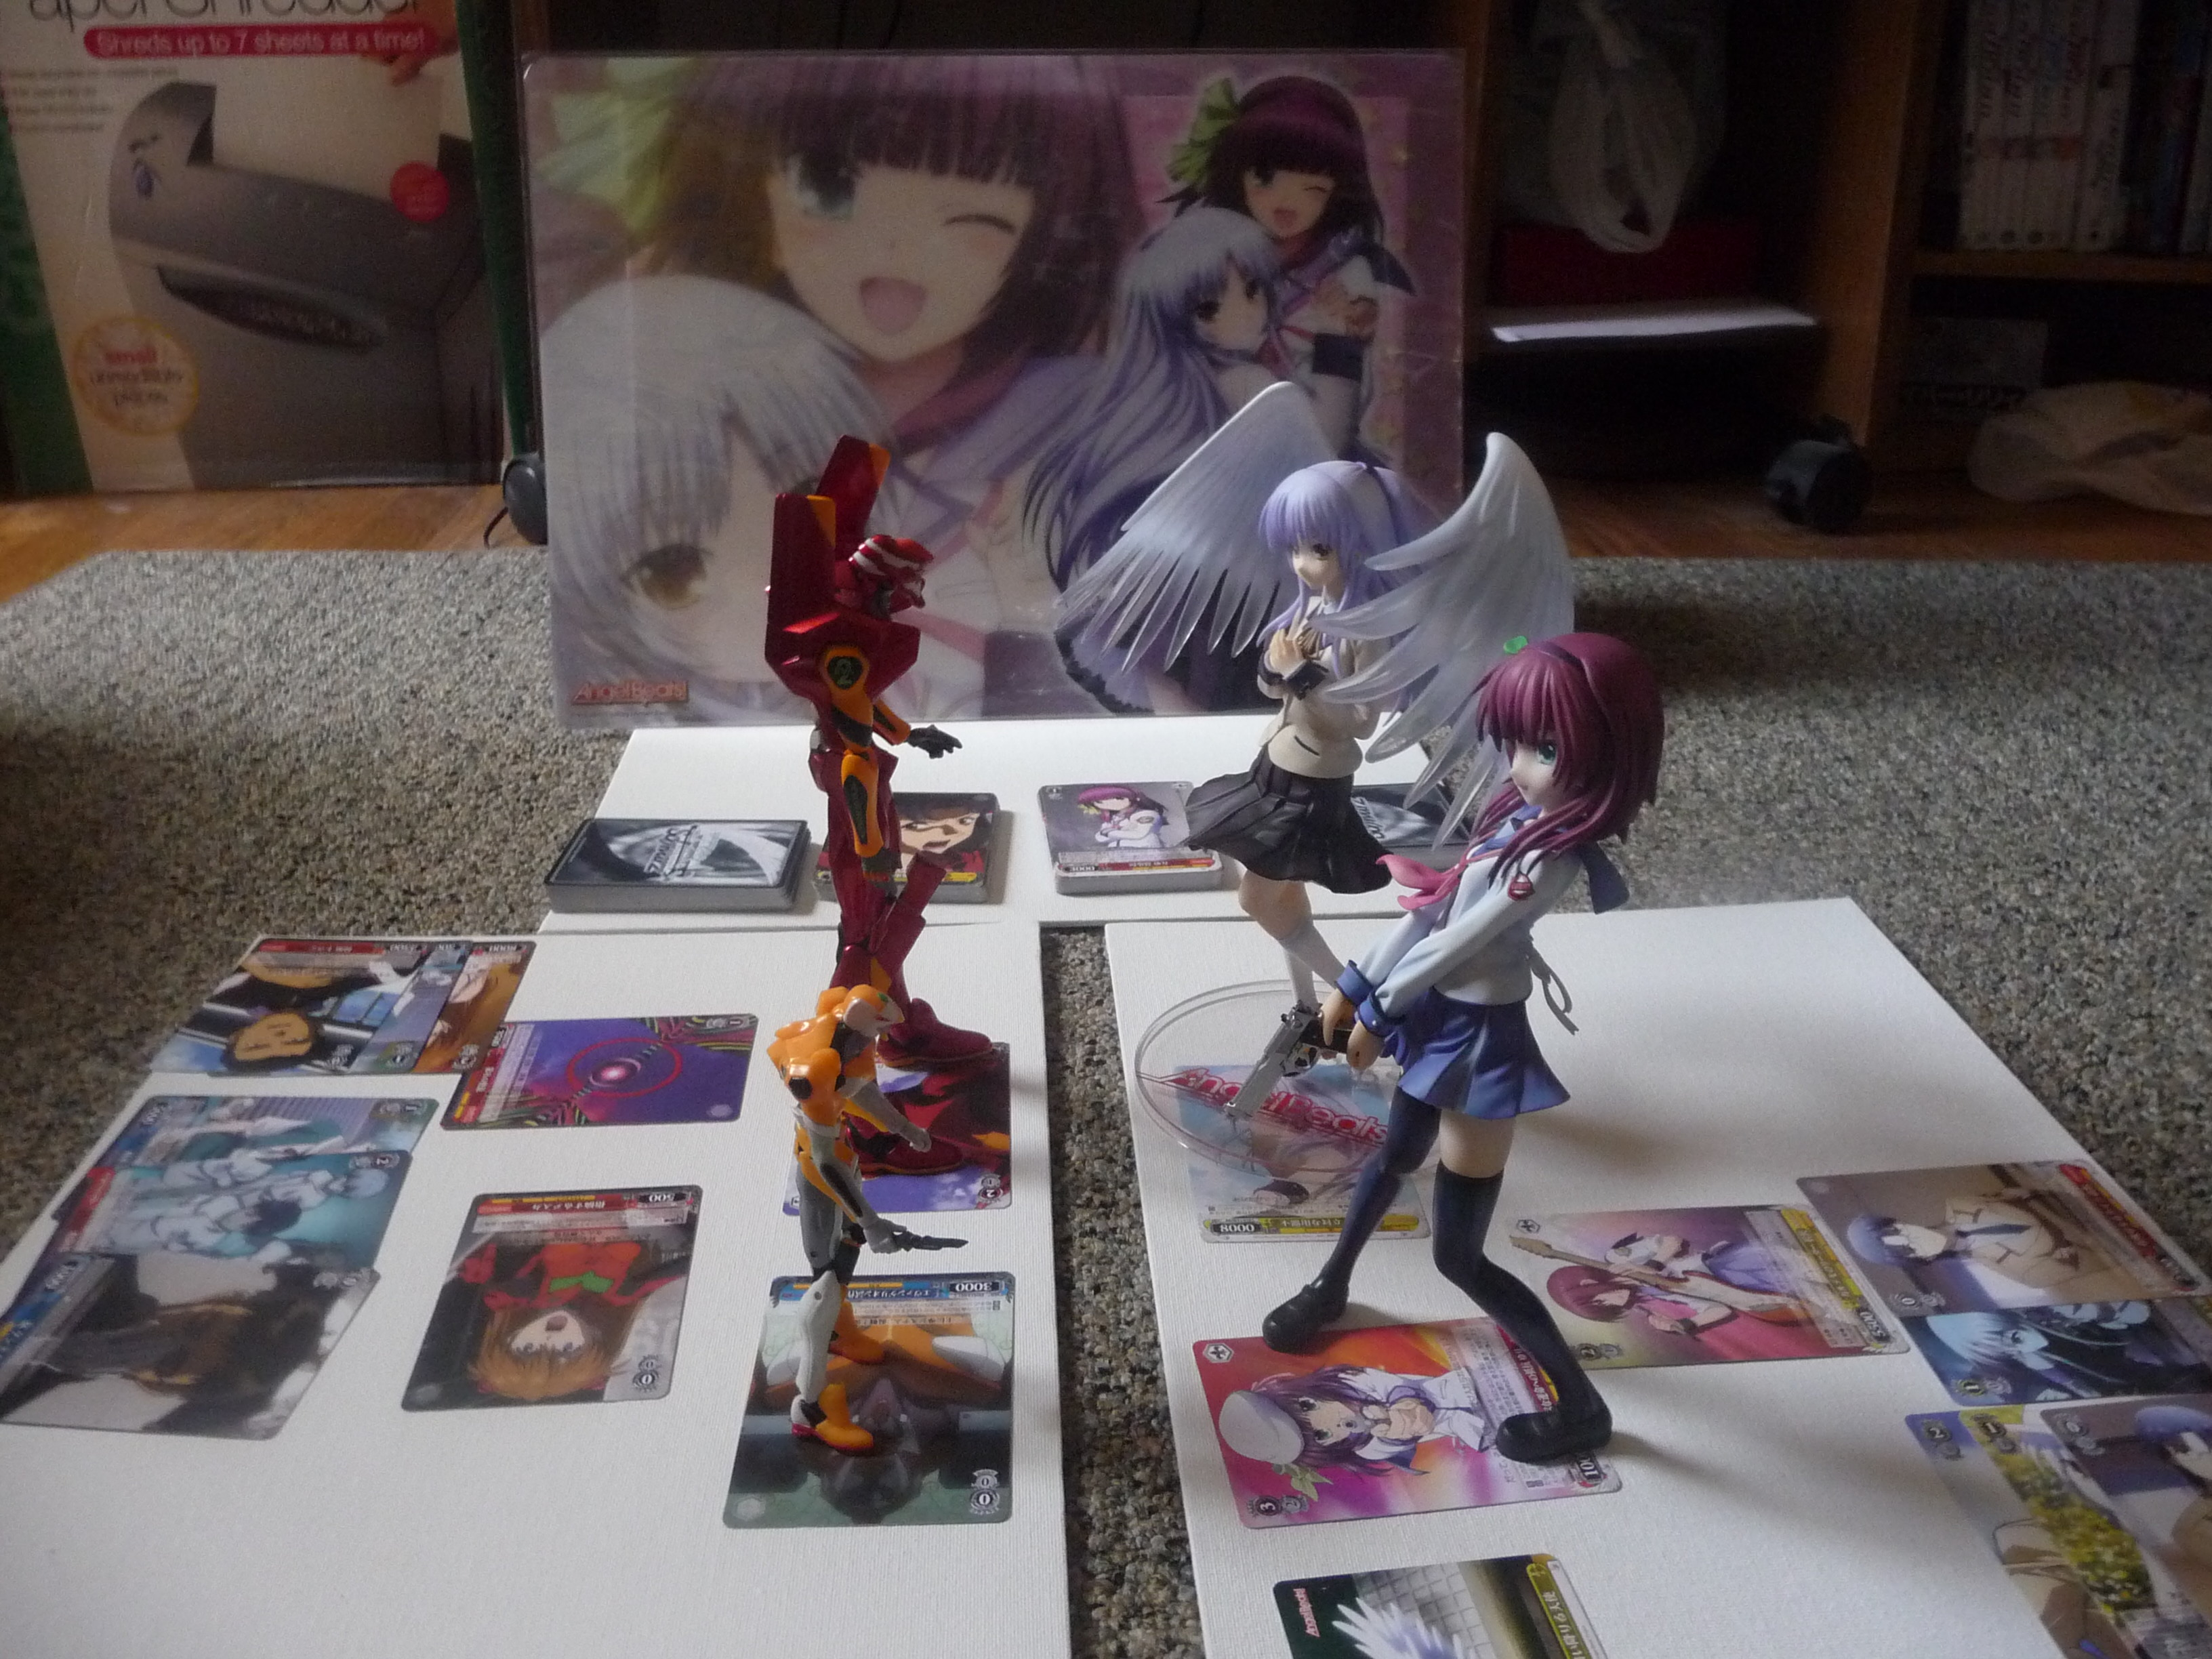 key yuri yamato tenshi good_smile_company eva-02 angel_beats! children's_card_games shin_seiki_evangelion visual_art's sanzigen na-ga